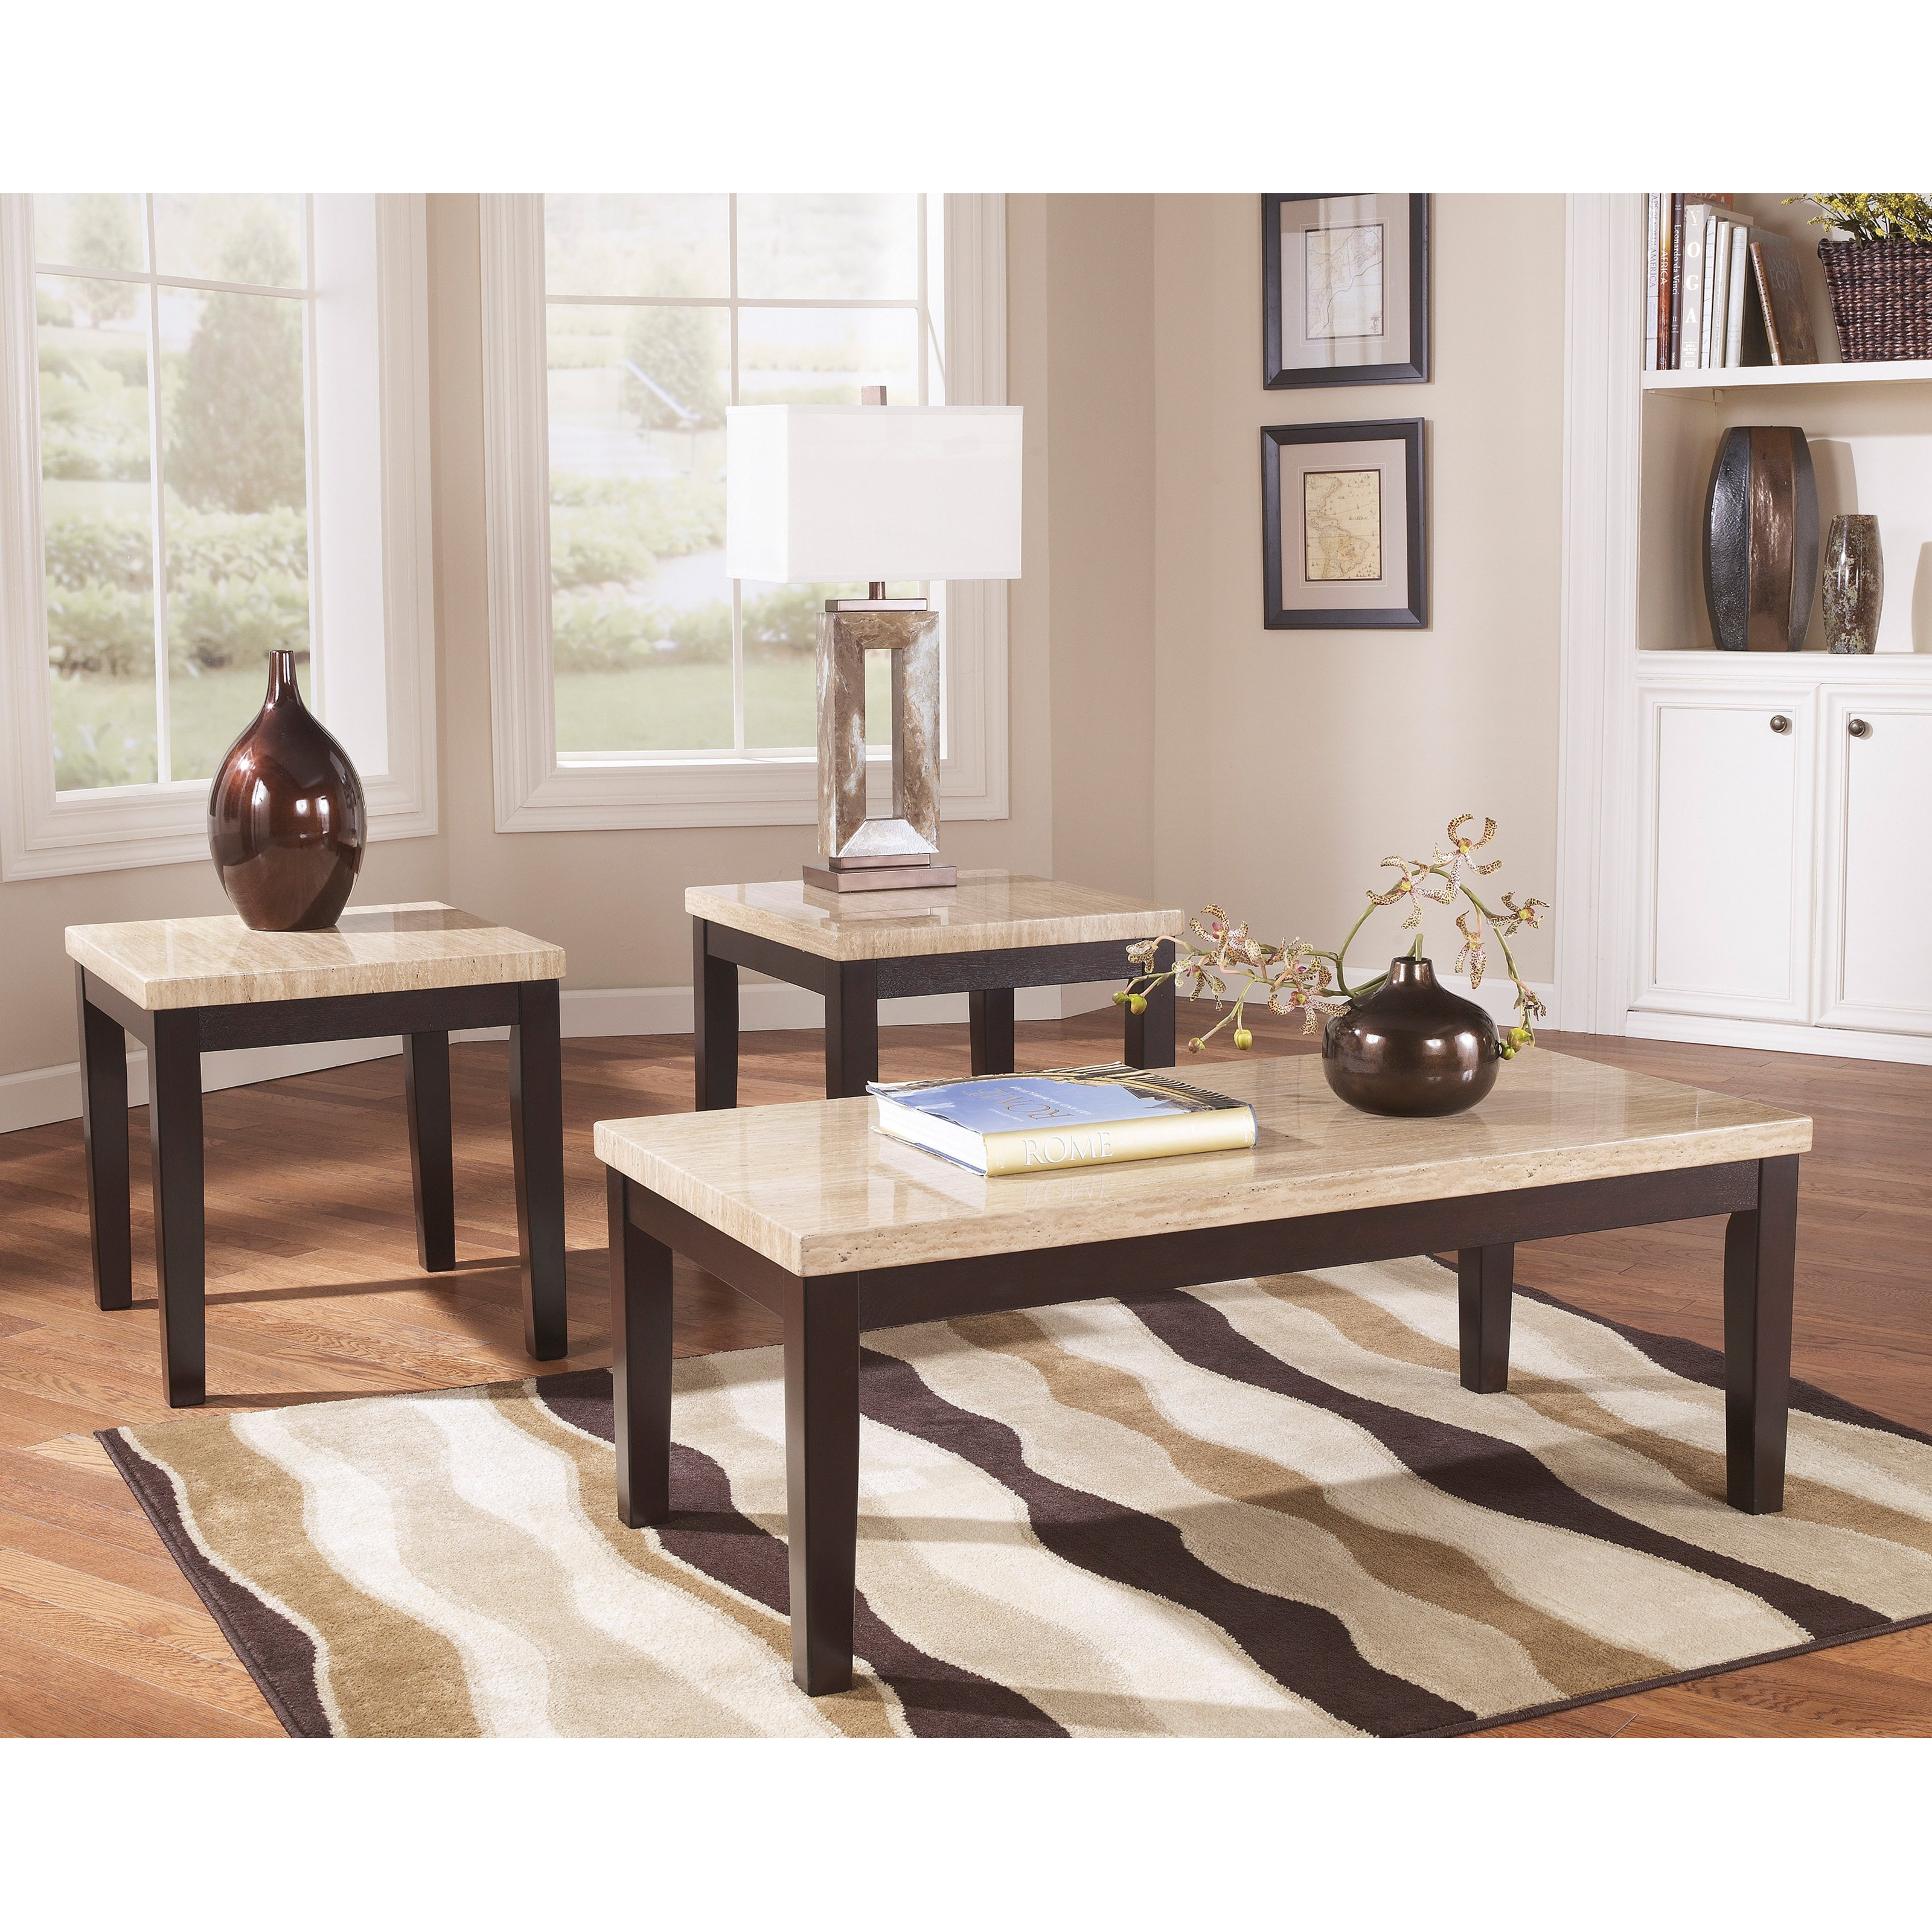 Signature Design By Ashley Wilder Espresso Occasional Table - Set of 3